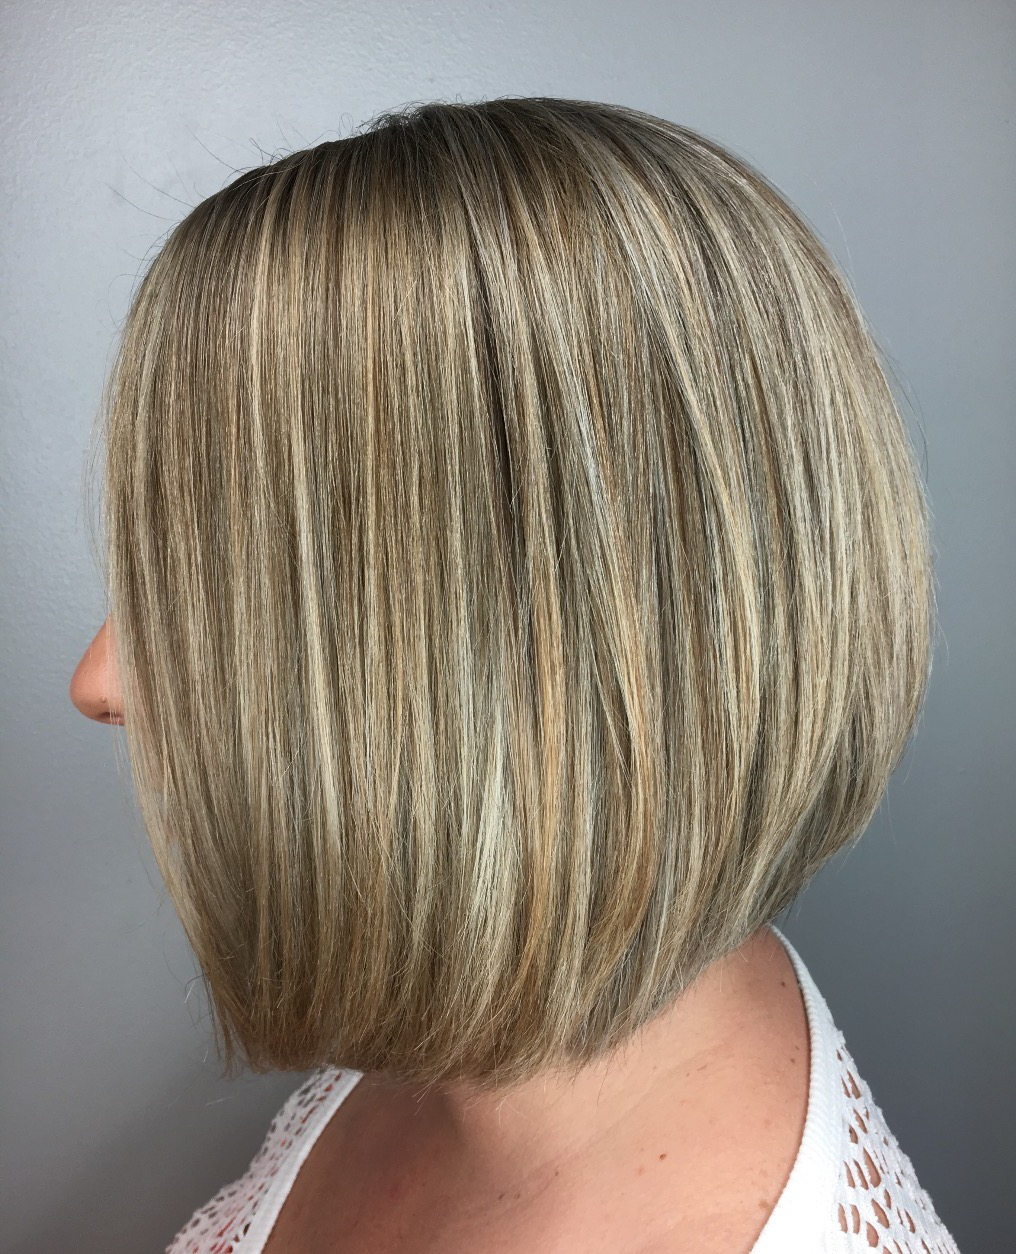 Full highlight, long bob